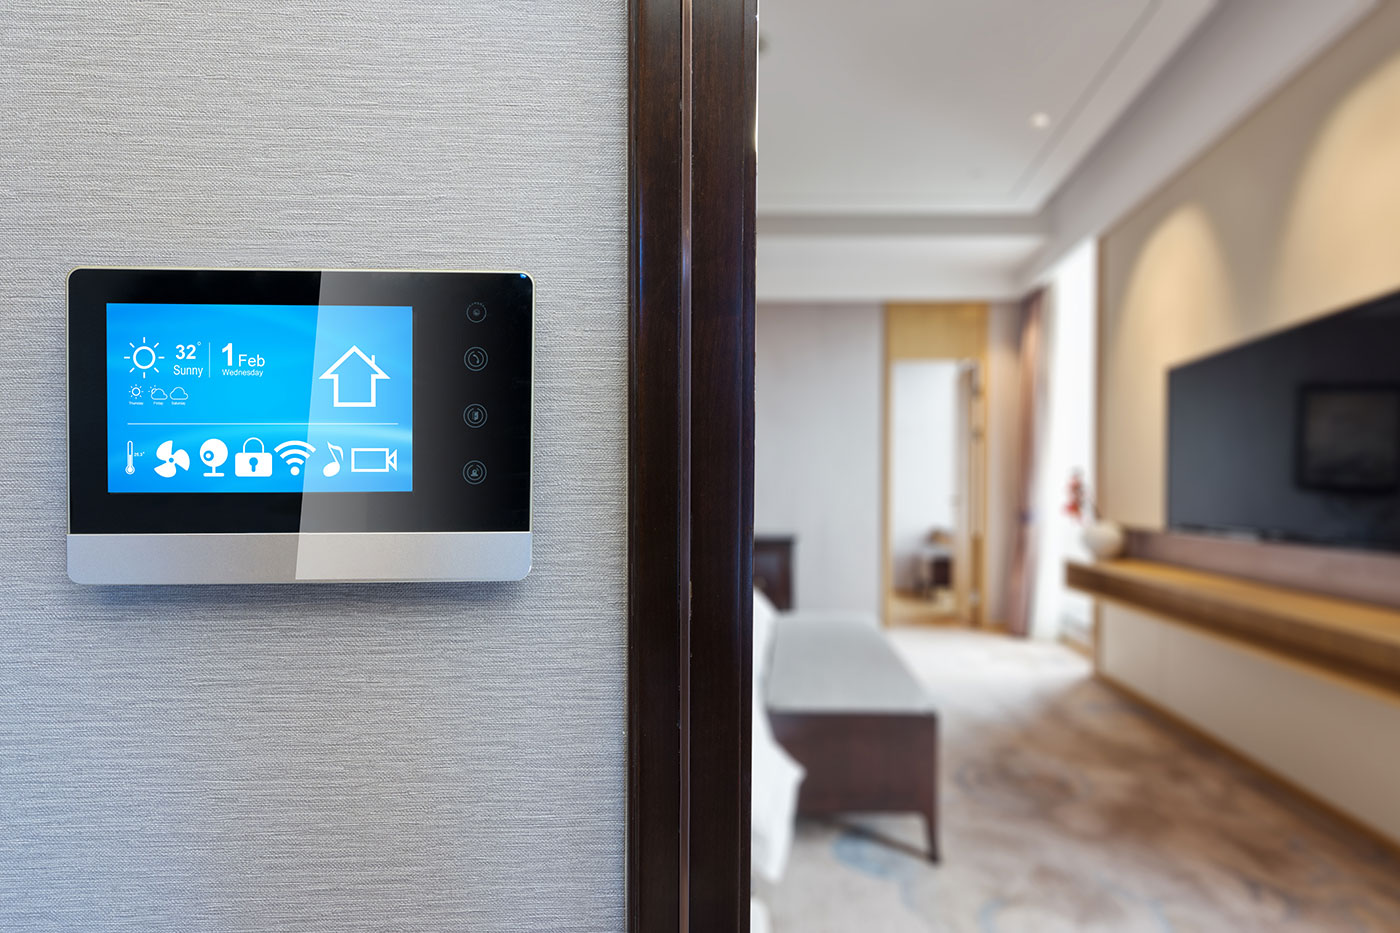 a smart thermostat that has been place on an interior wall of a home